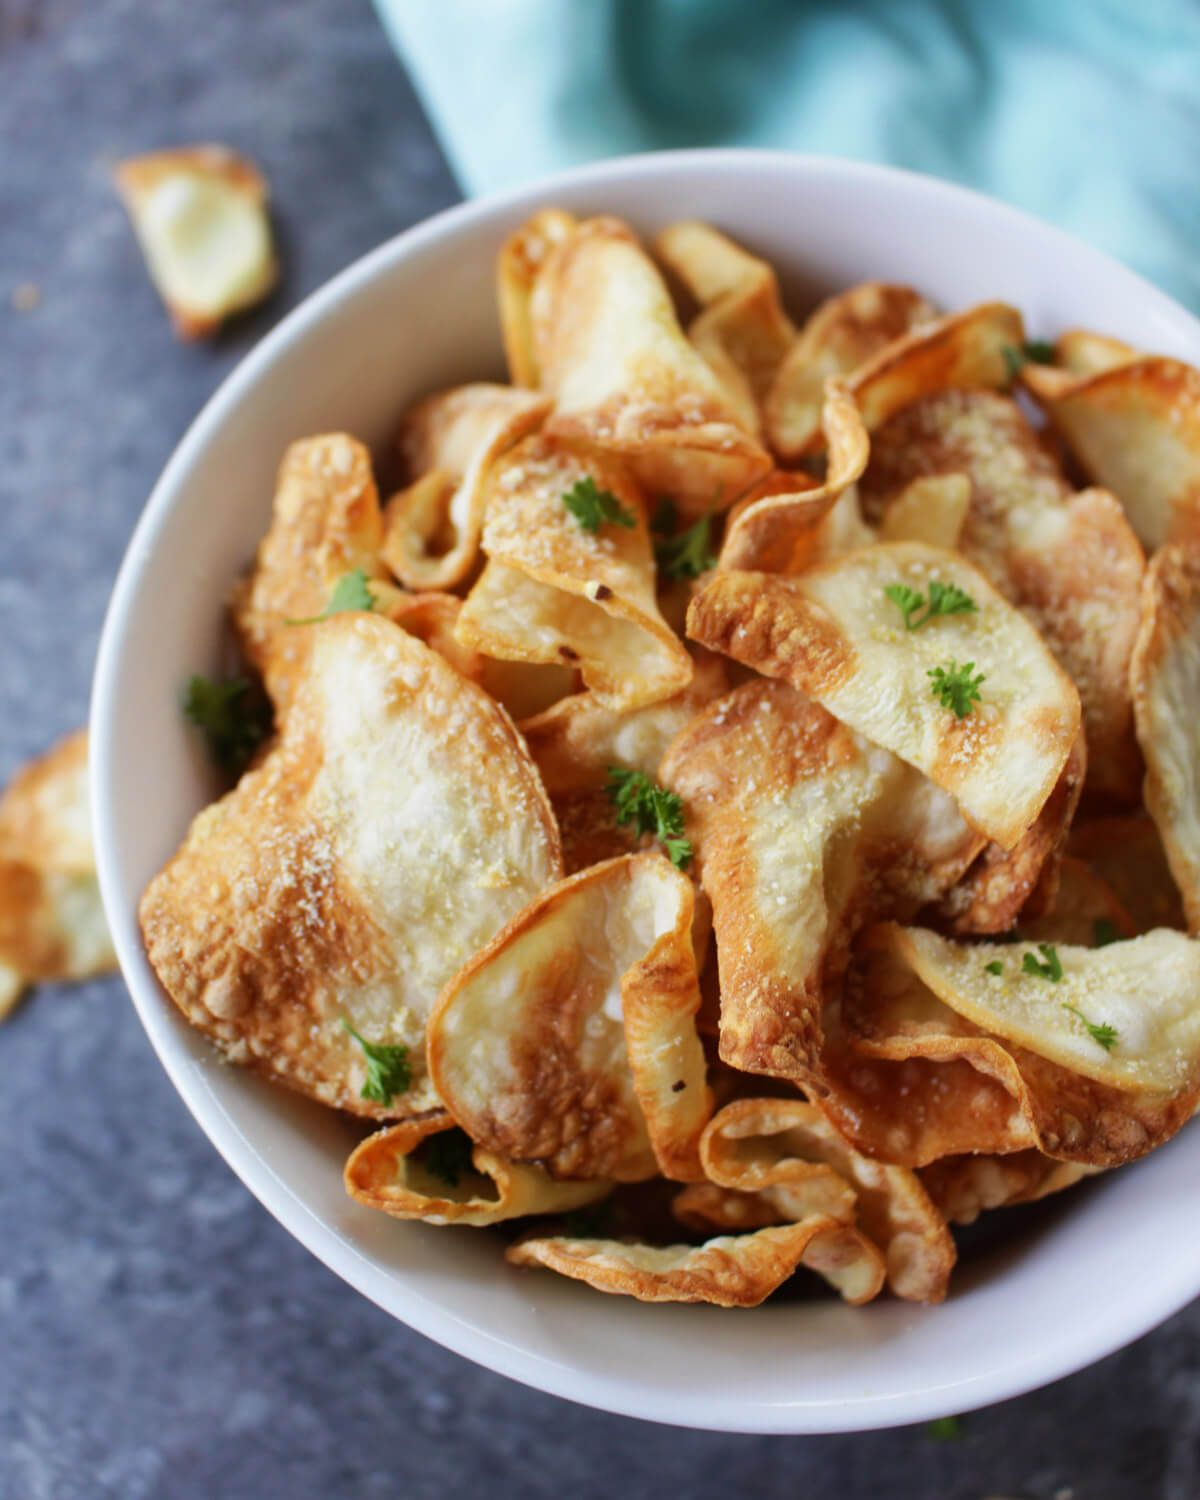 Crunchy OilFree Air Fryer Chips Healthy No Oil Frying